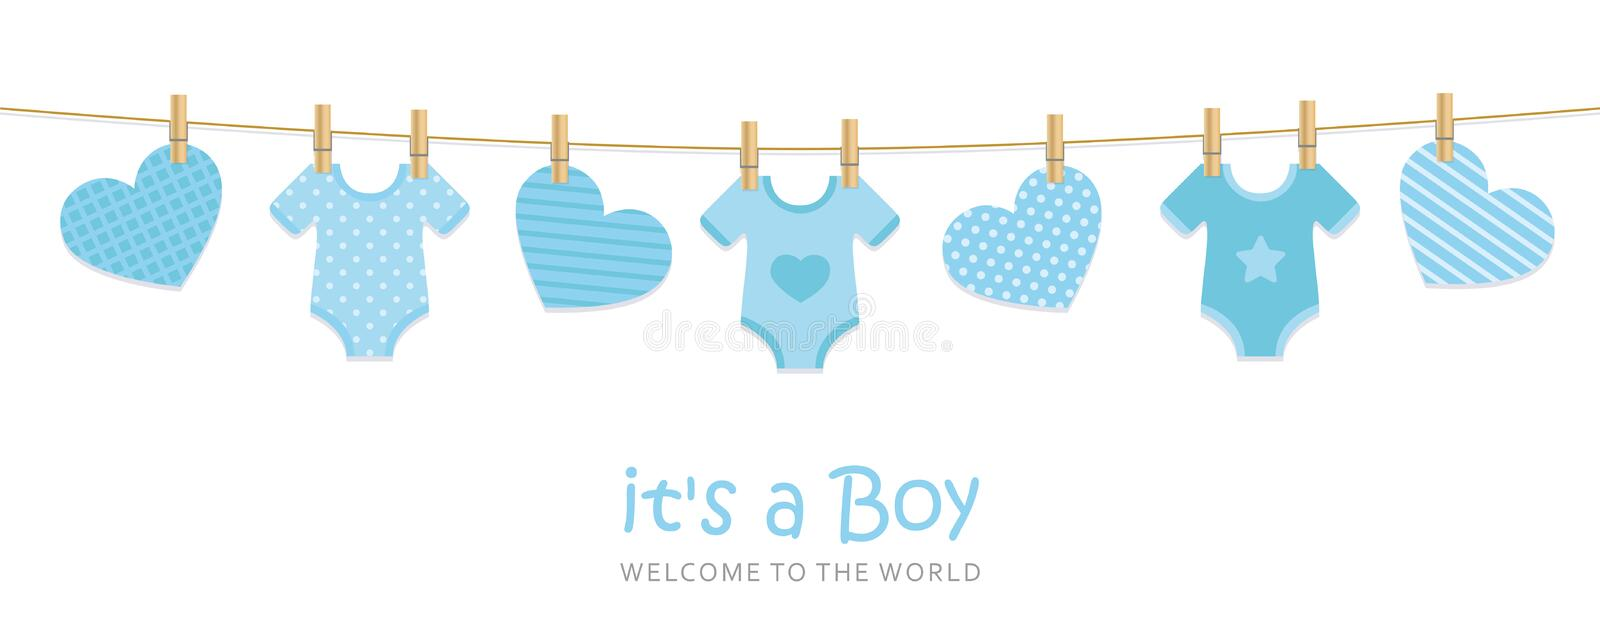 Its a boy welcome greeting card for childbirth with hanging hearts and bodysuits. Vector illustration EPS10 royalty free illustration